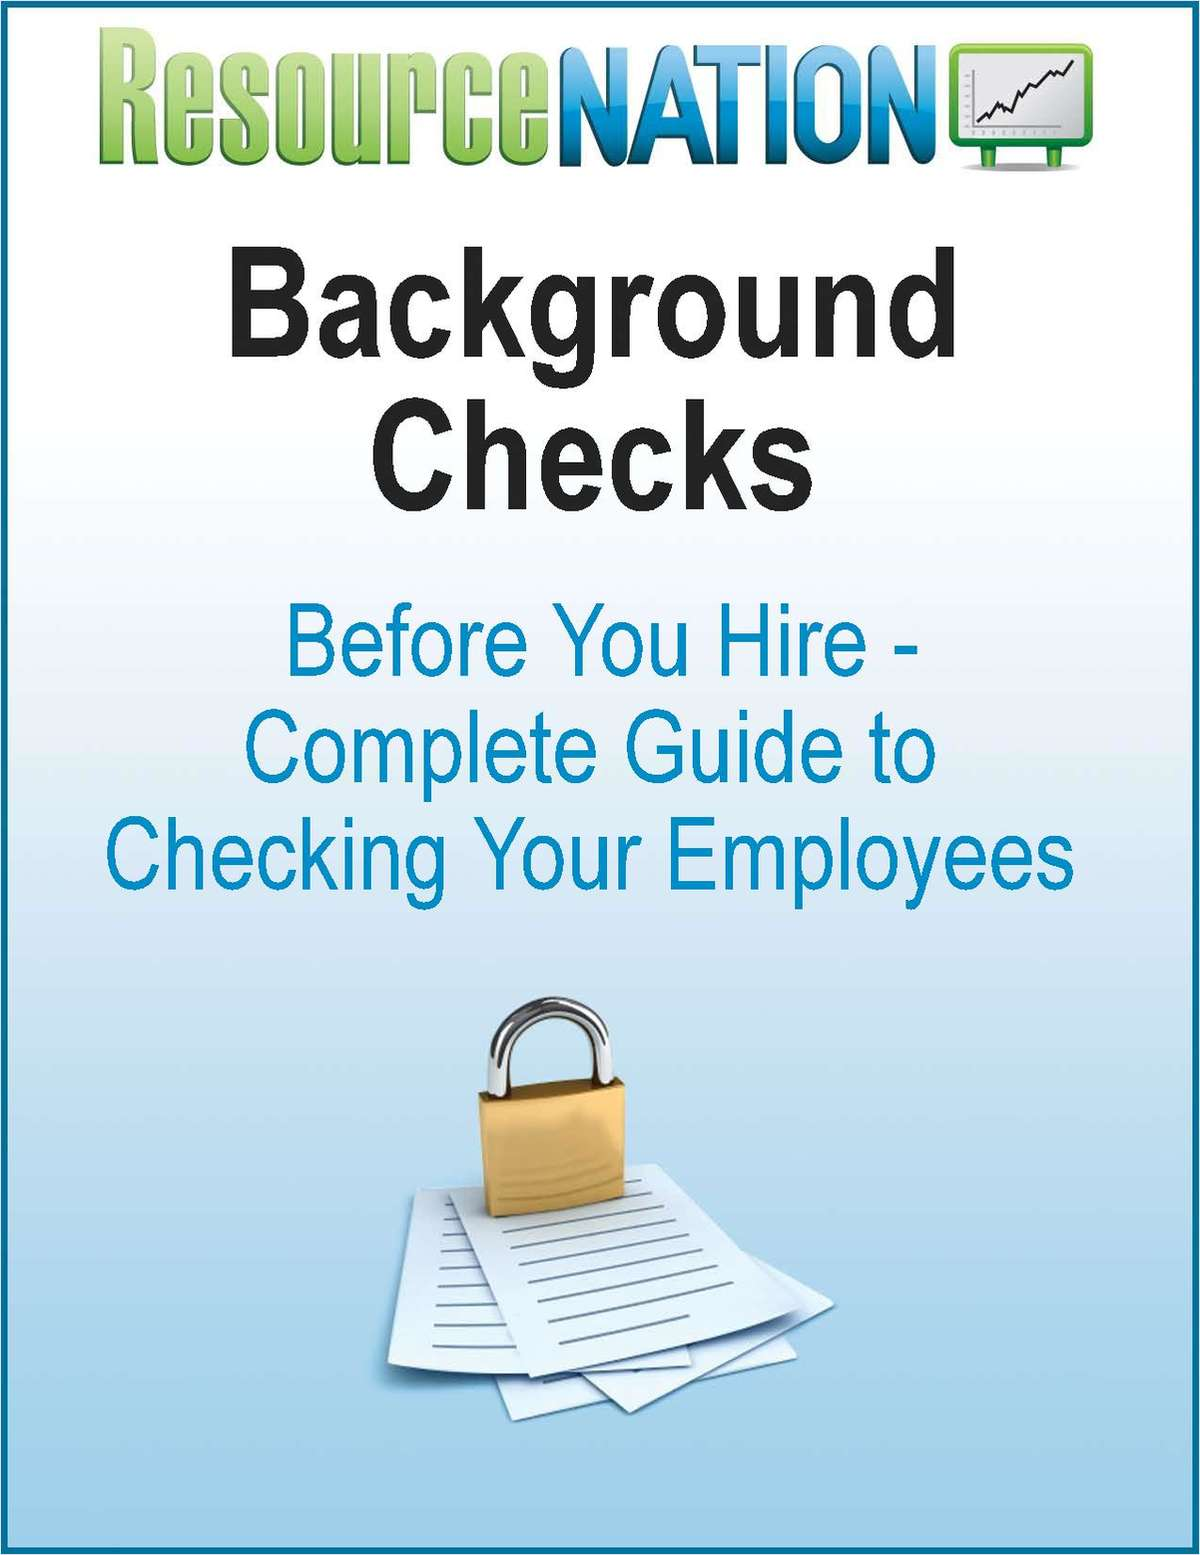 Before You Hire: Complete Guide To Checking Your Employees